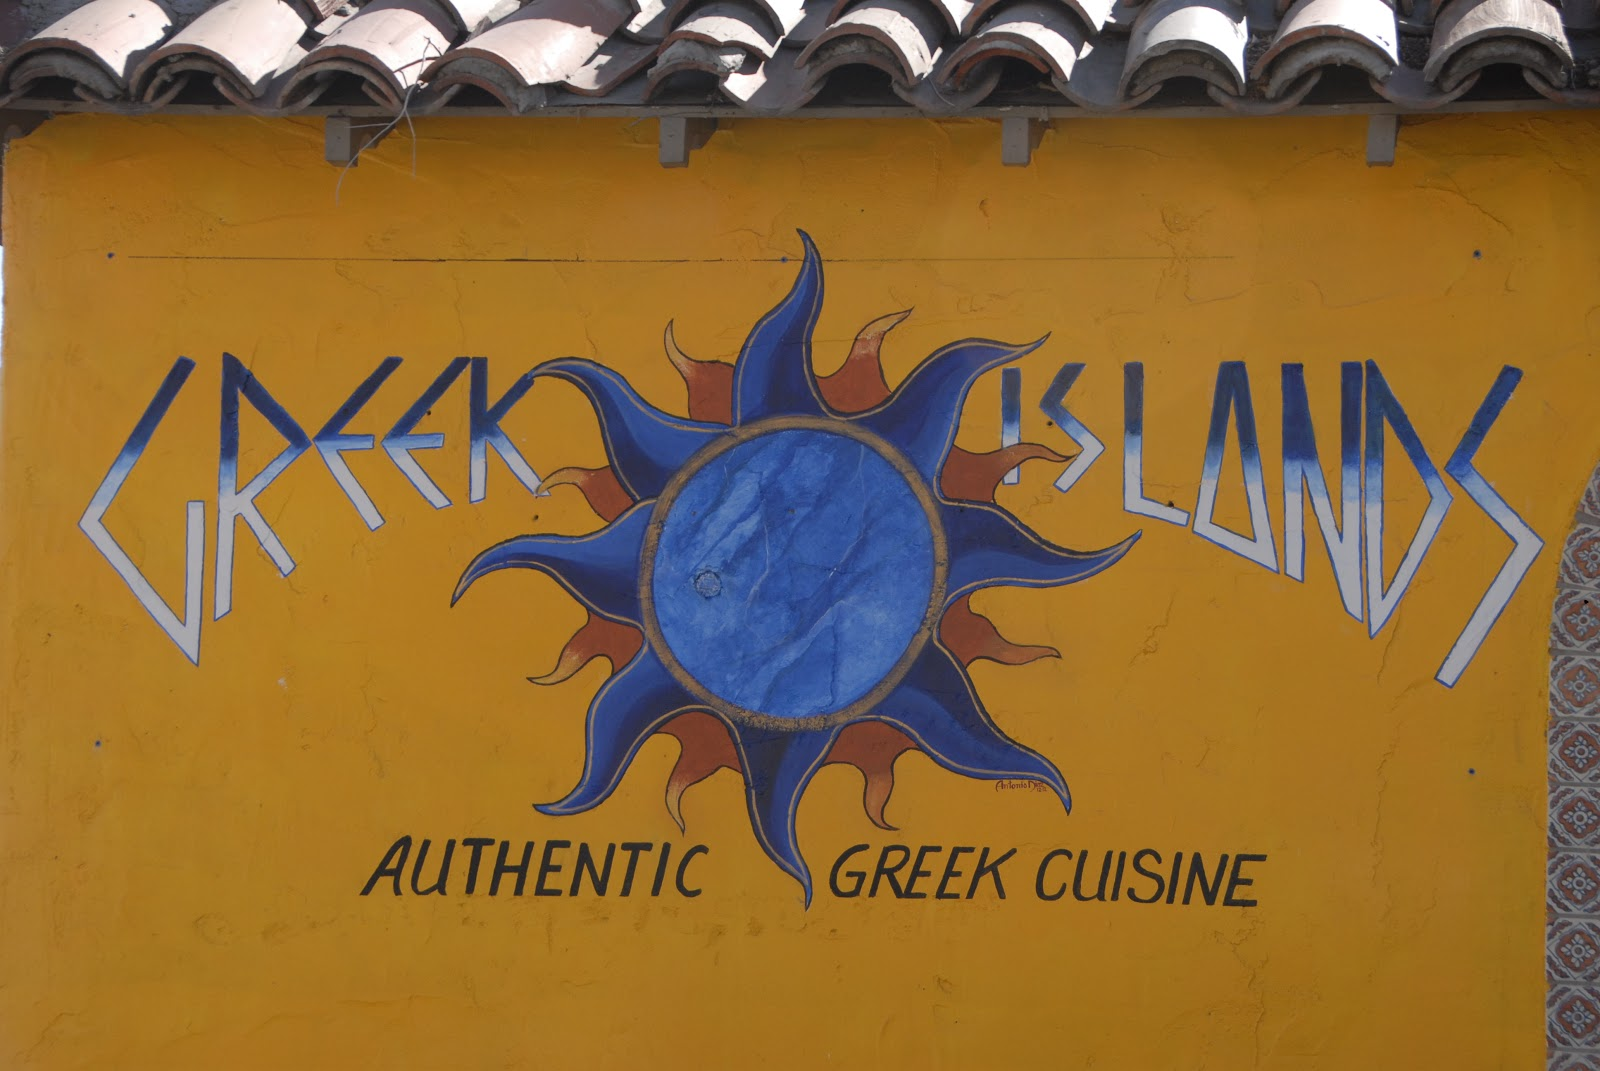 Barefoot books ladyd greek islands authentic greek cuisine for Authentic greek cuisine